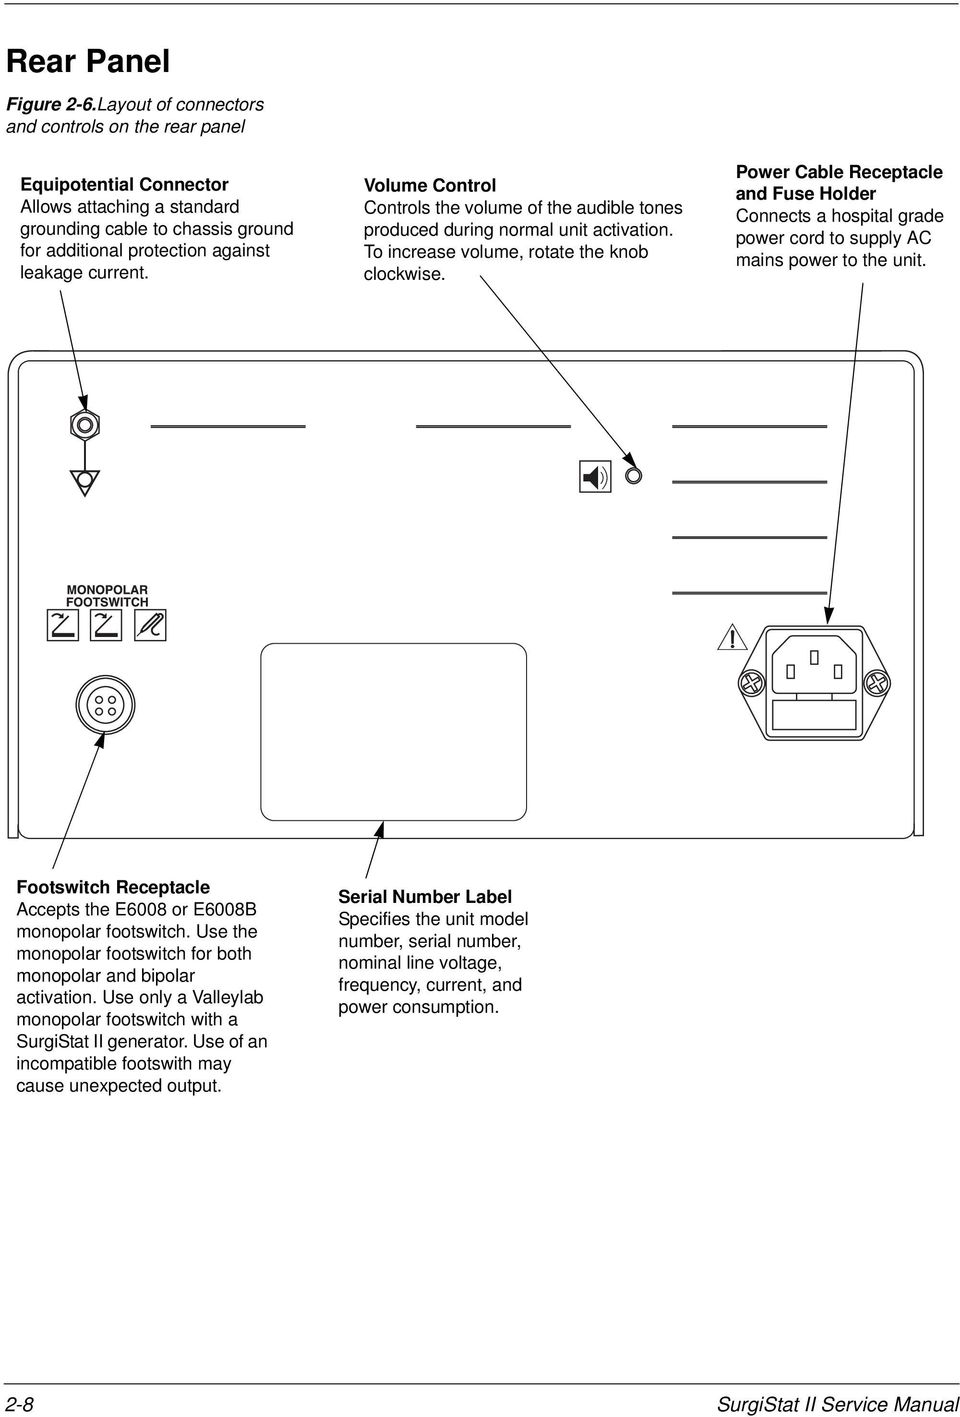 ... SurgiStat II Service Manual. Volume Control Controls the volume of the  audible tones produced during normal unit activation. To